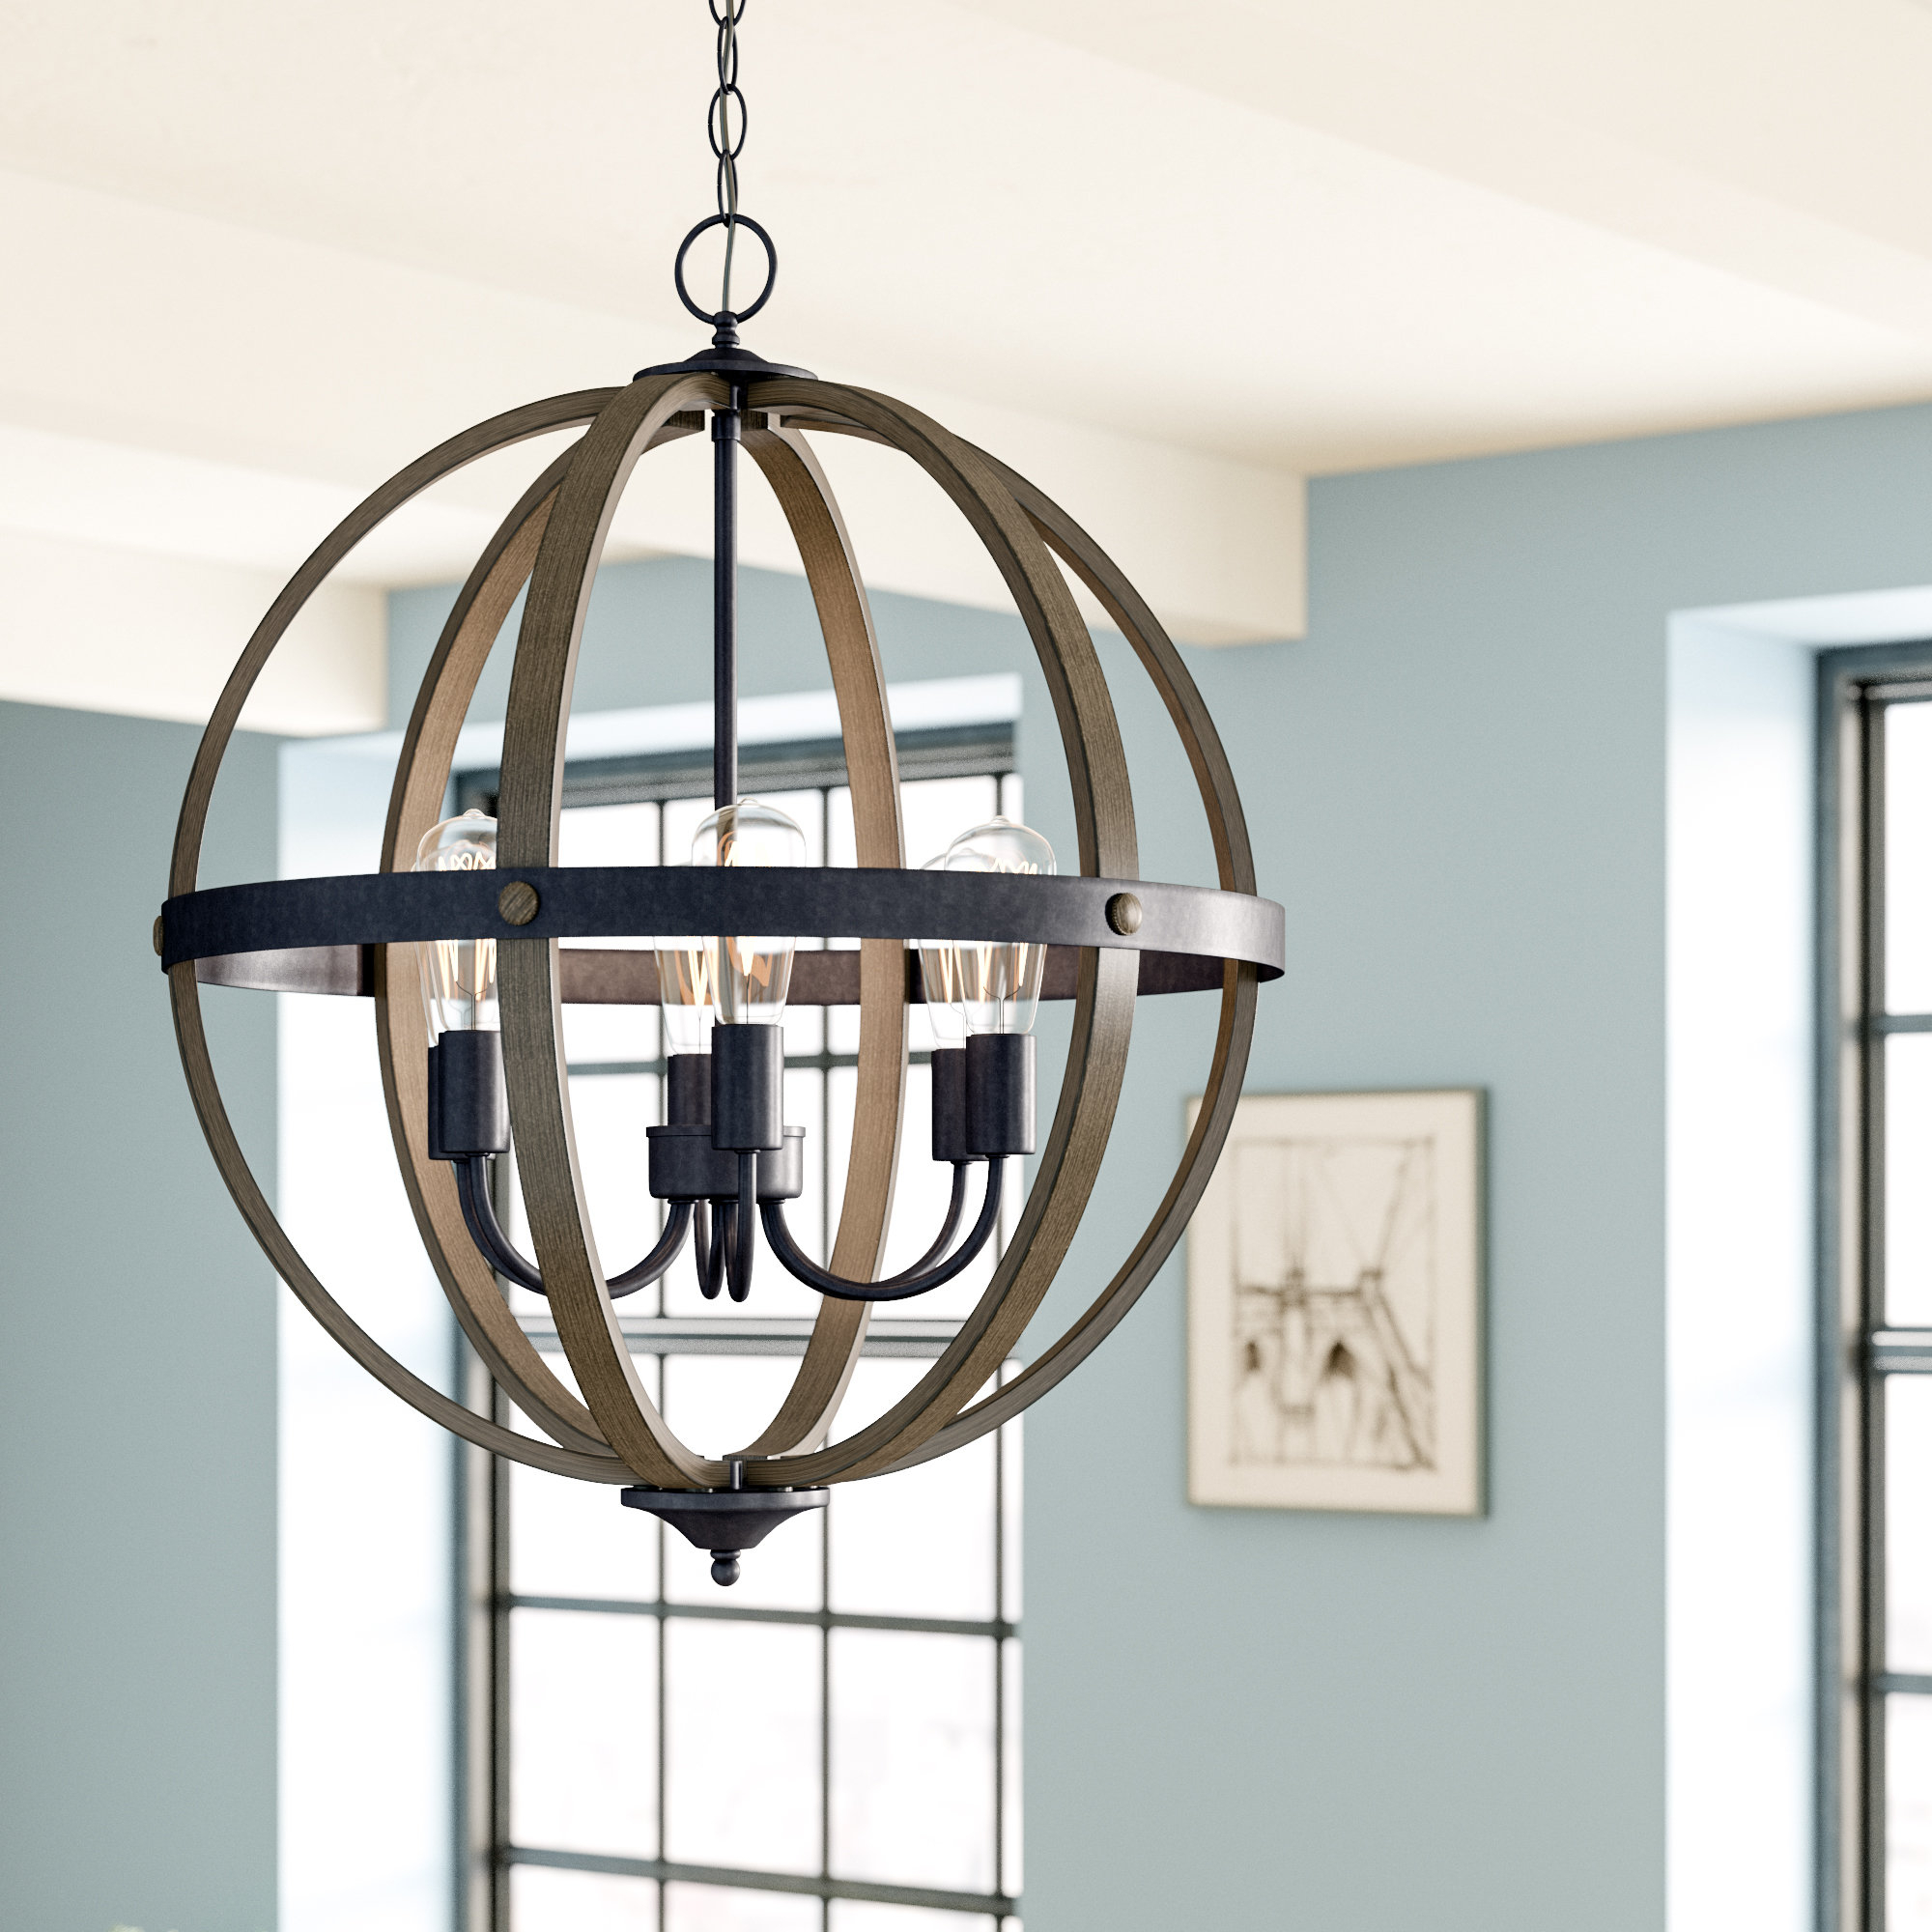 [%Globe Chandeliers Sale – Up To 65% Off Until September 30Th Intended For Favorite Ricciardo 4 Light Globe Chandeliers Ricciardo 4 Light Globe Chandeliers Inside Well Known Globe Chandeliers Sale – Up To 65% Off Until September 30Th Recent Ricciardo 4 Light Globe Chandeliers Pertaining To Globe Chandeliers Sale – Up To 65% Off Until September 30Th Newest Globe Chandeliers Sale – Up To 65% Off Until September 30Th Throughout Ricciardo 4 Light Globe Chandeliers%] (View 2 of 25)